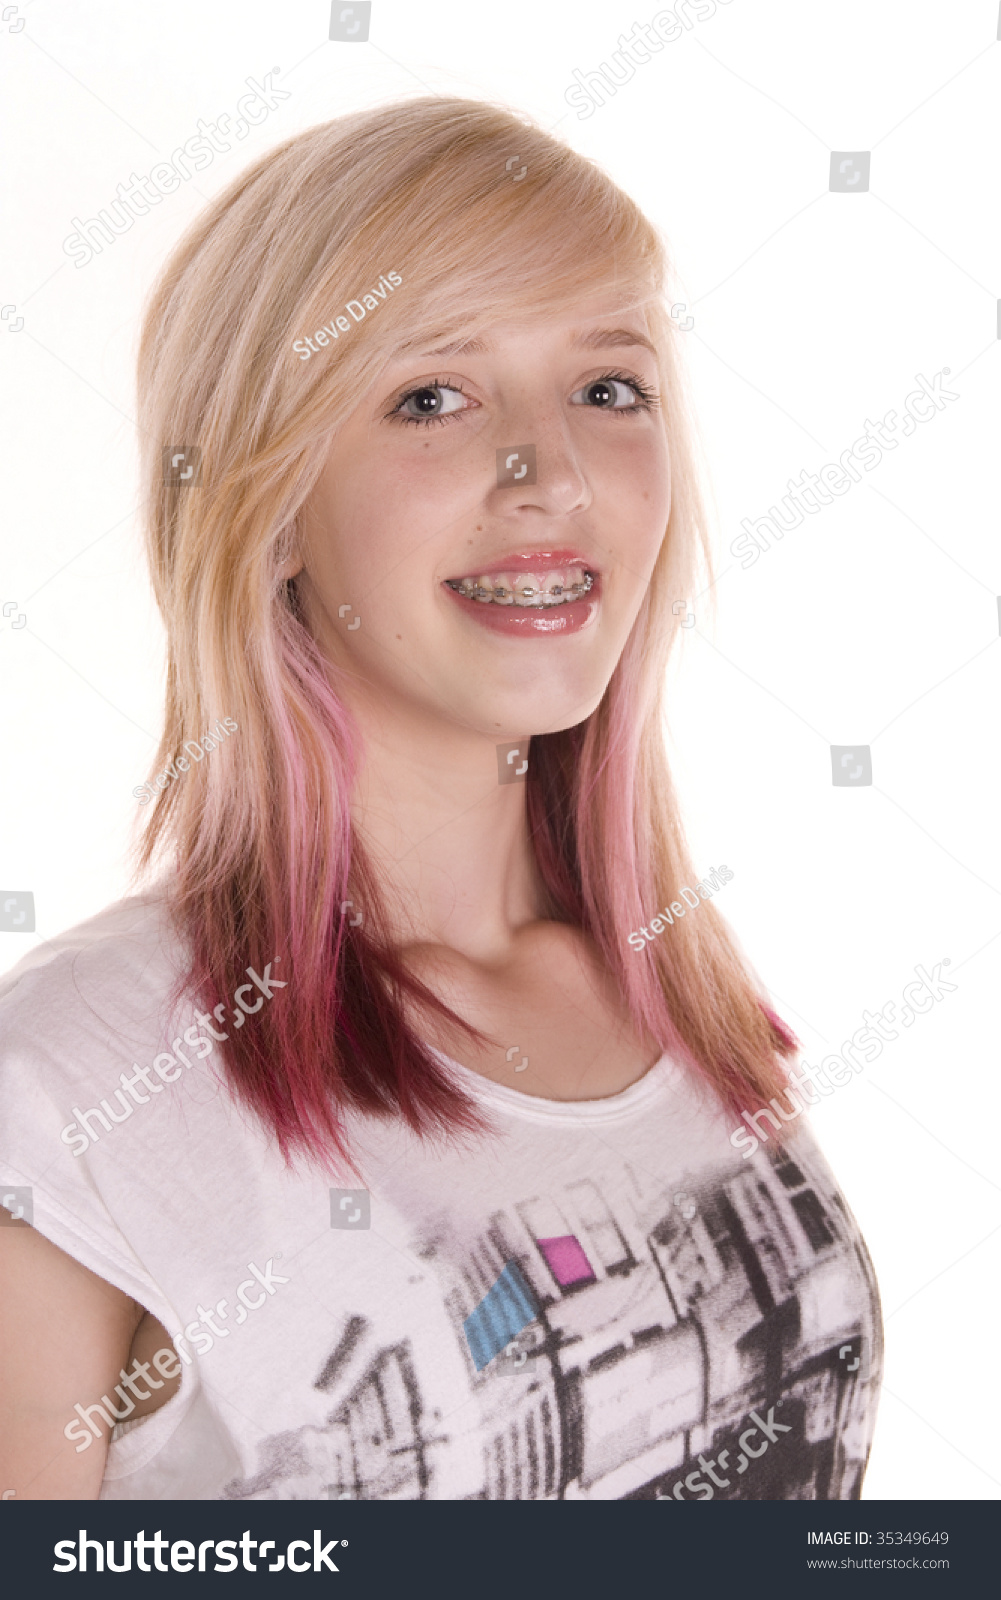 Pretty Teenage Girl With Blonde And Pink Hair Wearing Dental Braces White Background